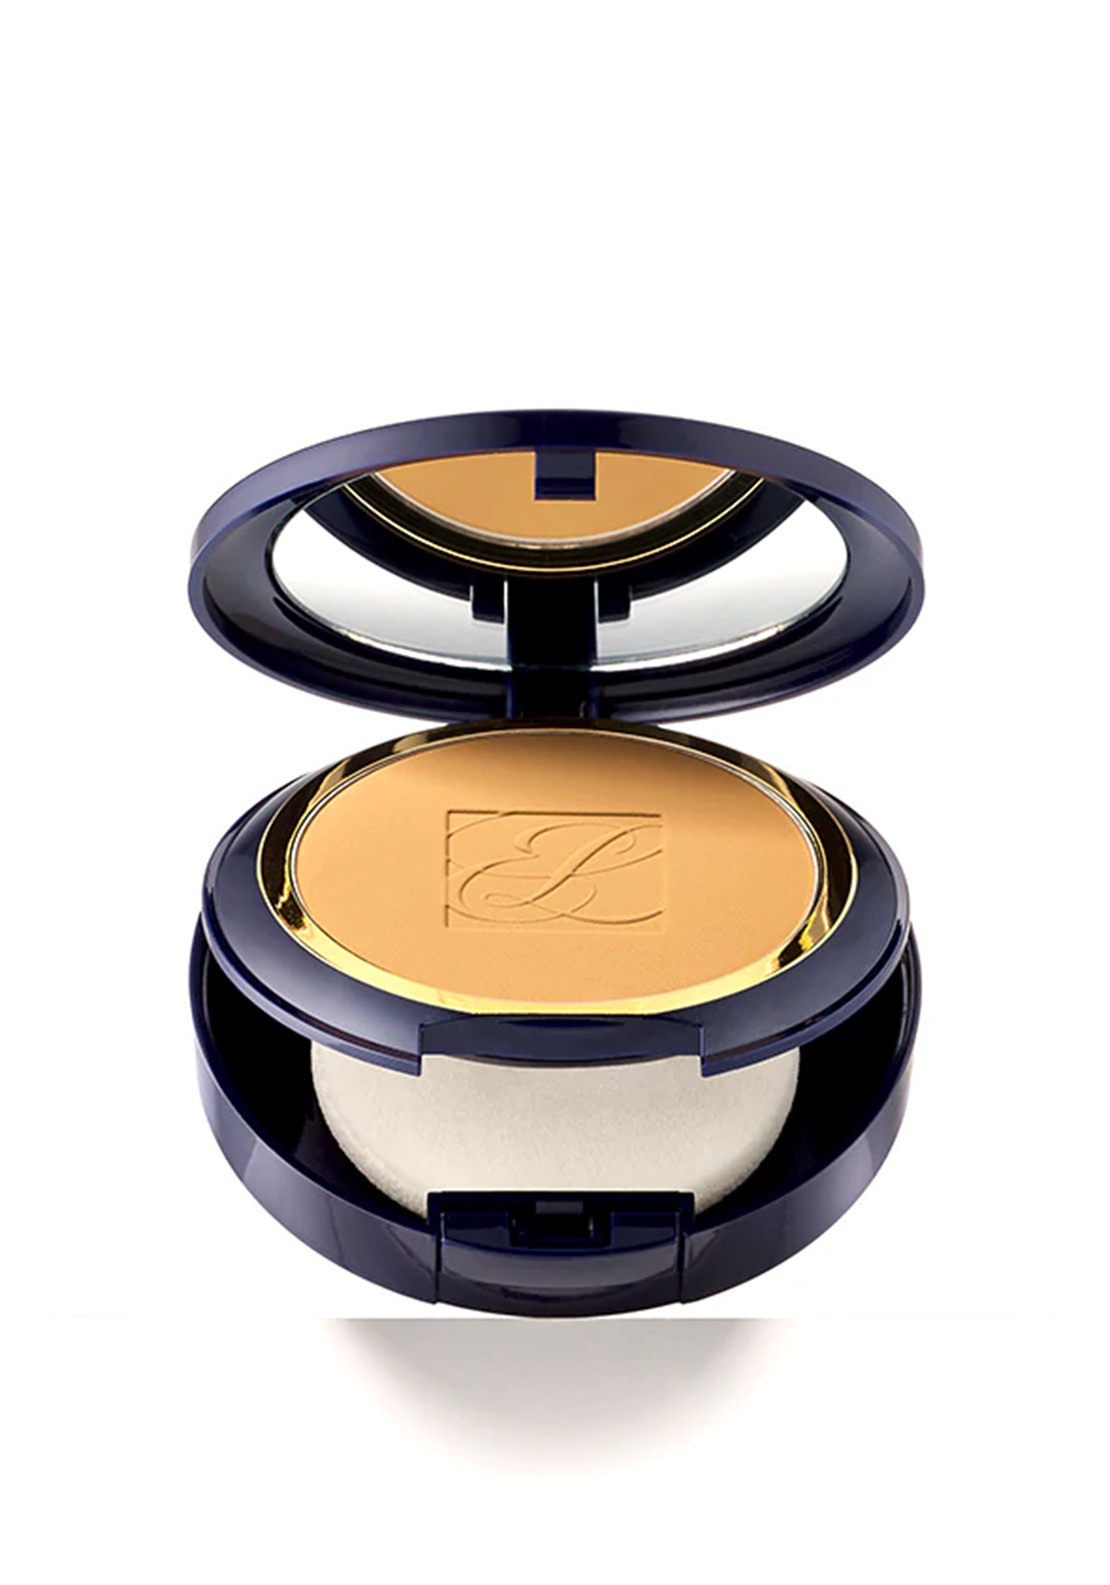 Estee Lauder Double Wear Stay In Place Powder Makeup, Rattan